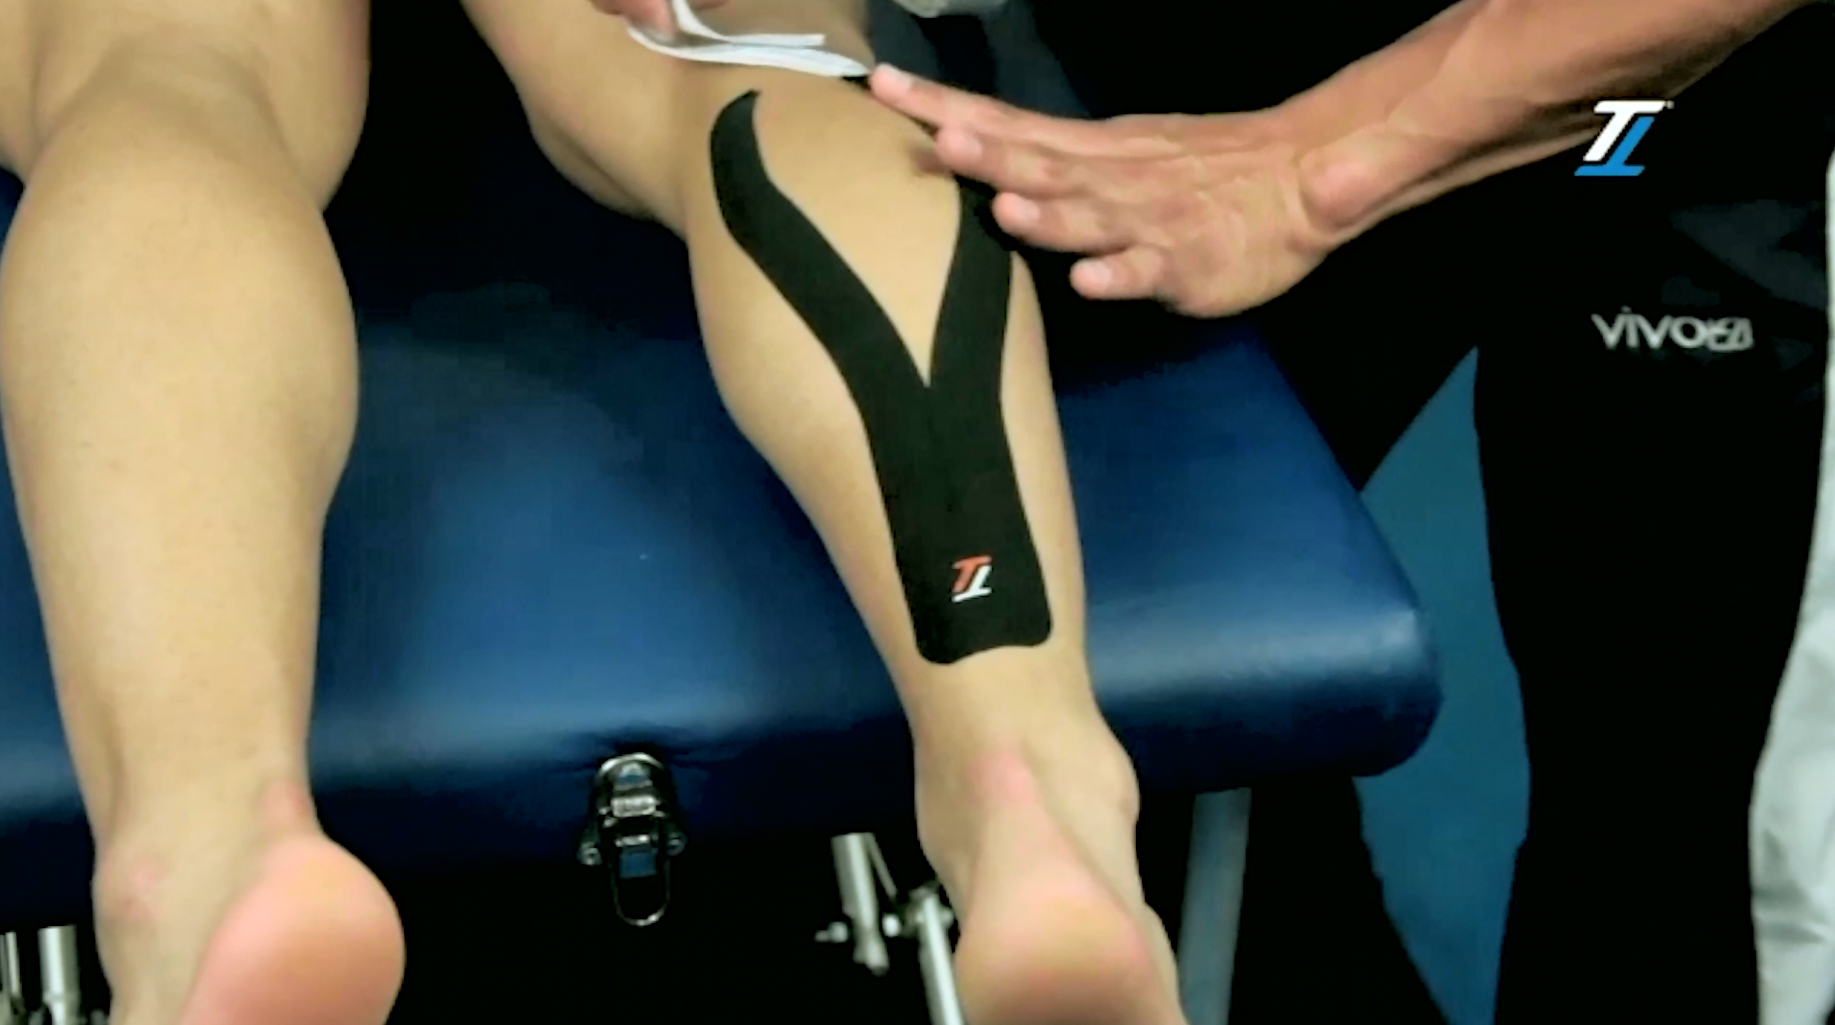 Calf strains treatment with TT Target Tape